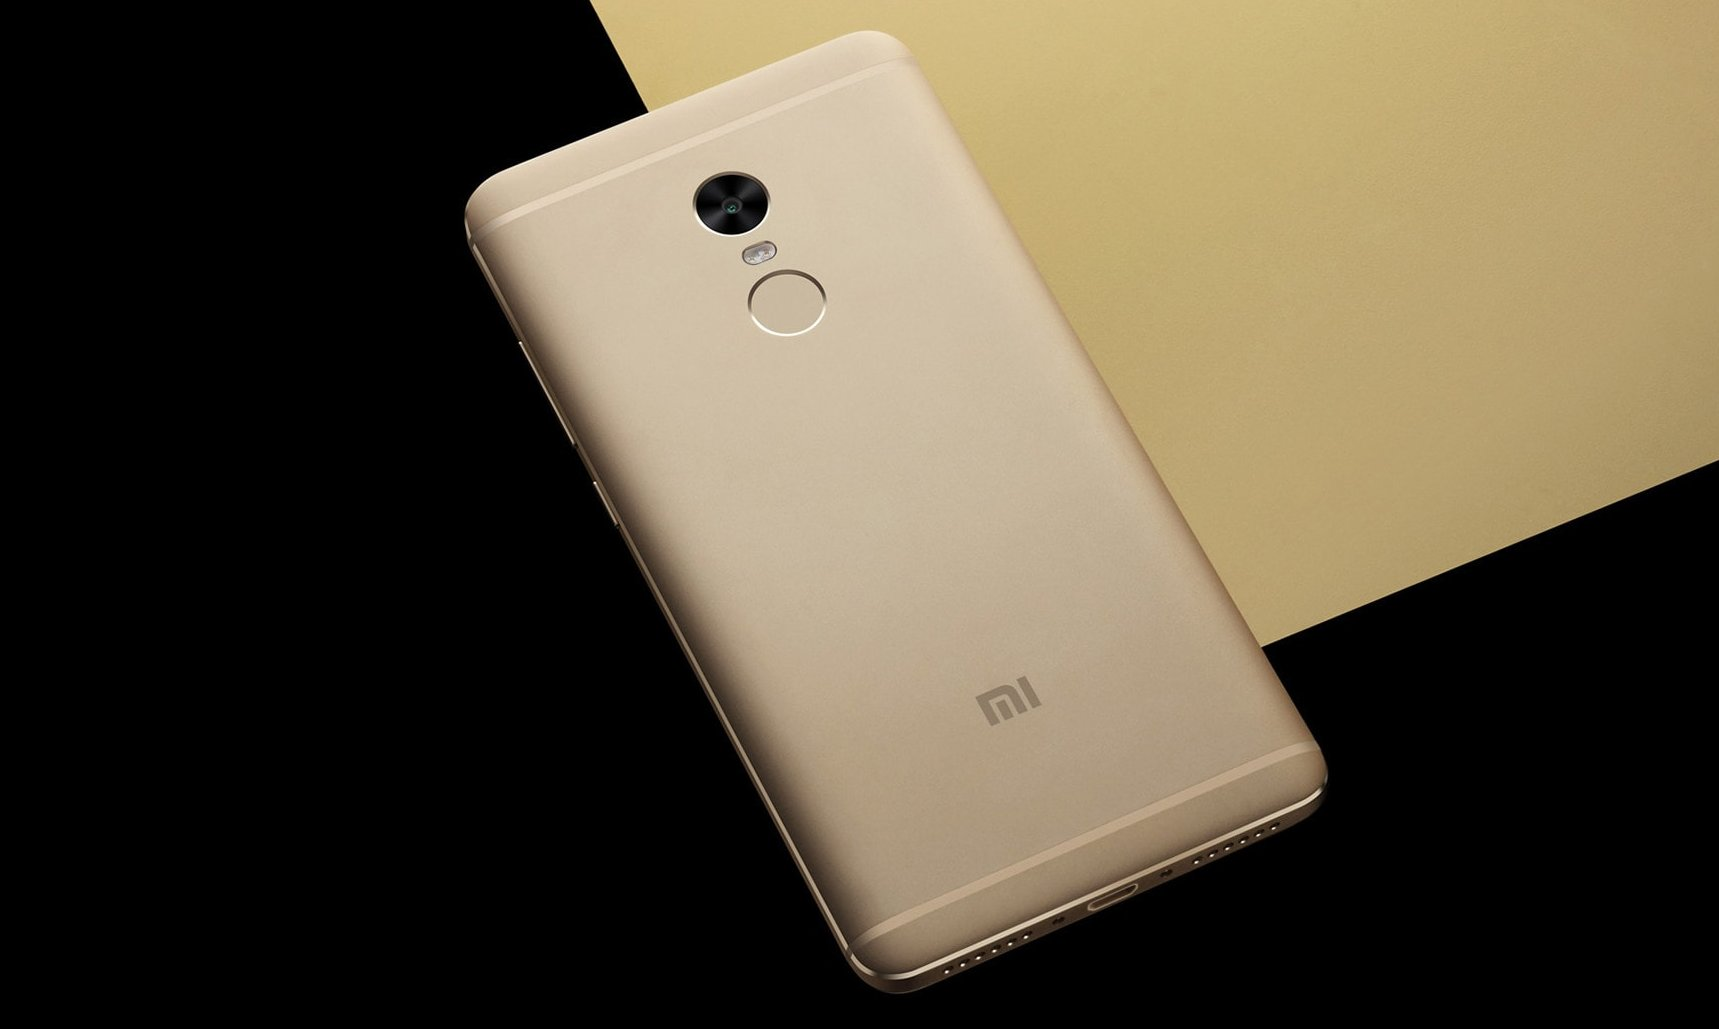 Design of Xiaomi Redmi Note 4